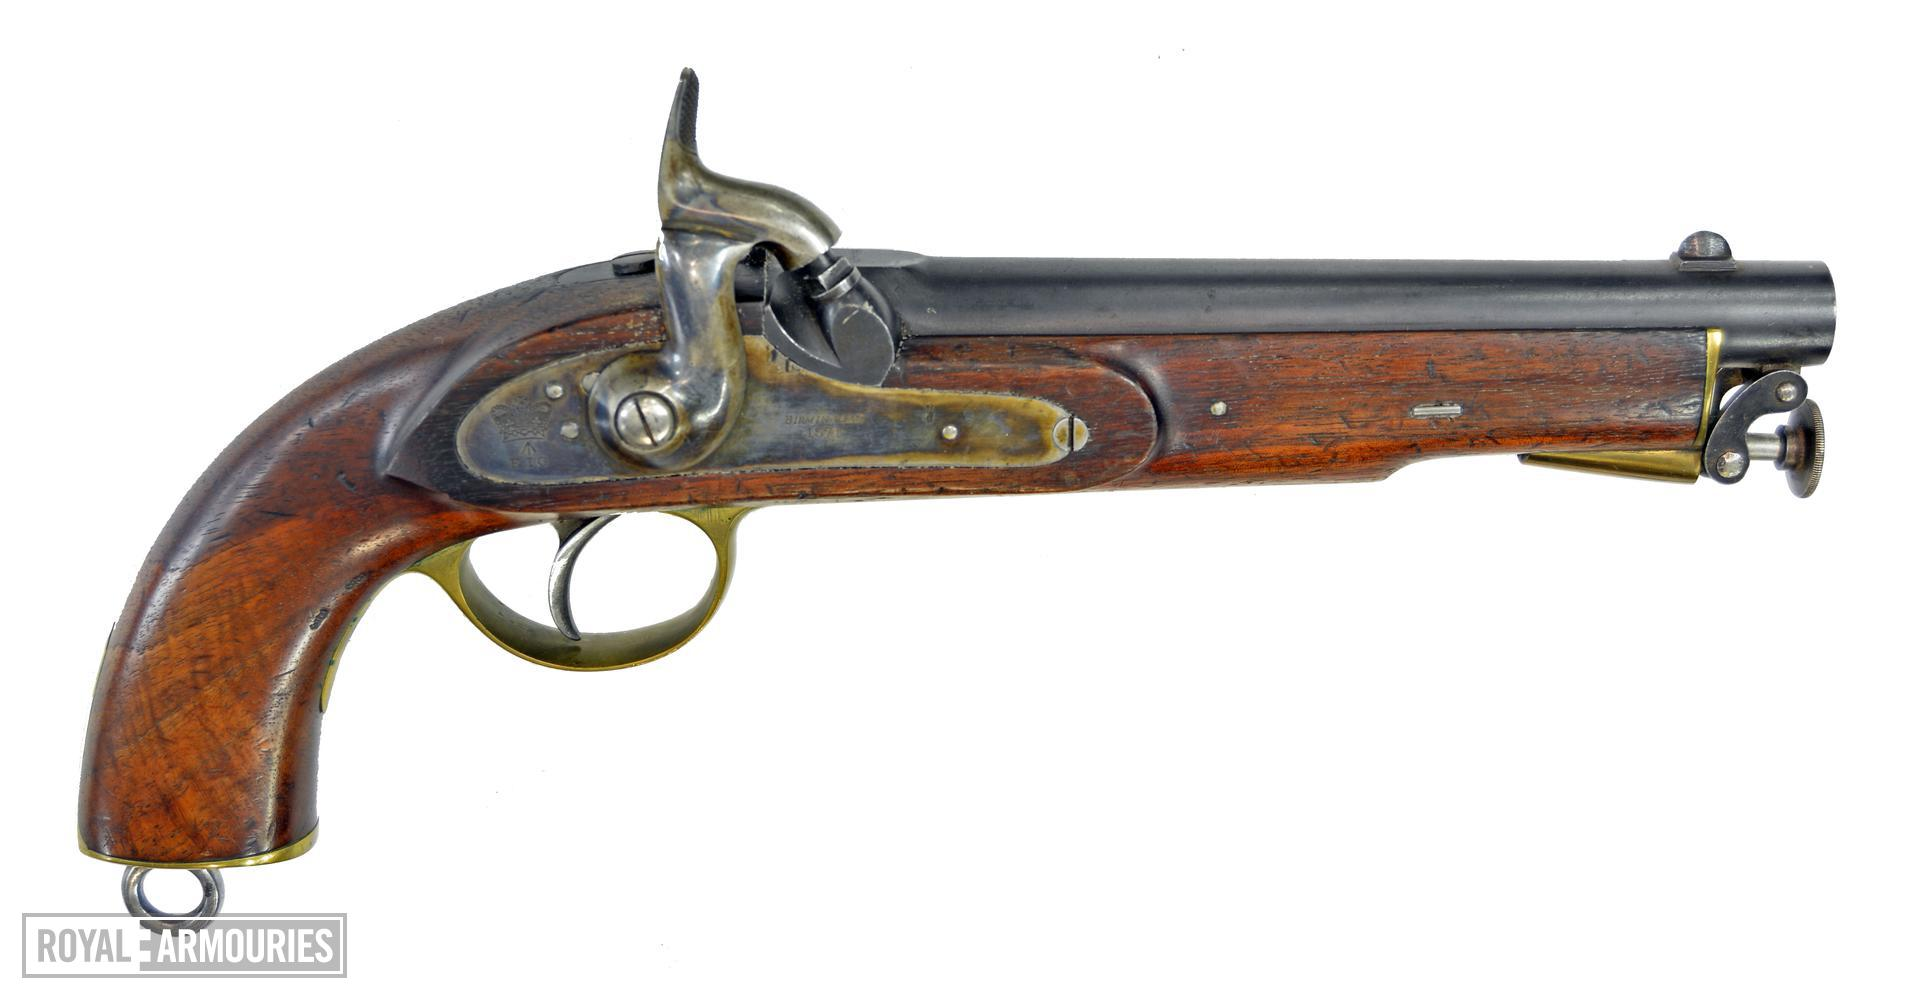 Percussion pistol. Enfield Cavalry India Pattern. Smooth Bore. Calibre .656 inch. Fitted with integral articulated rammer. RHS view of pistol PR.10511